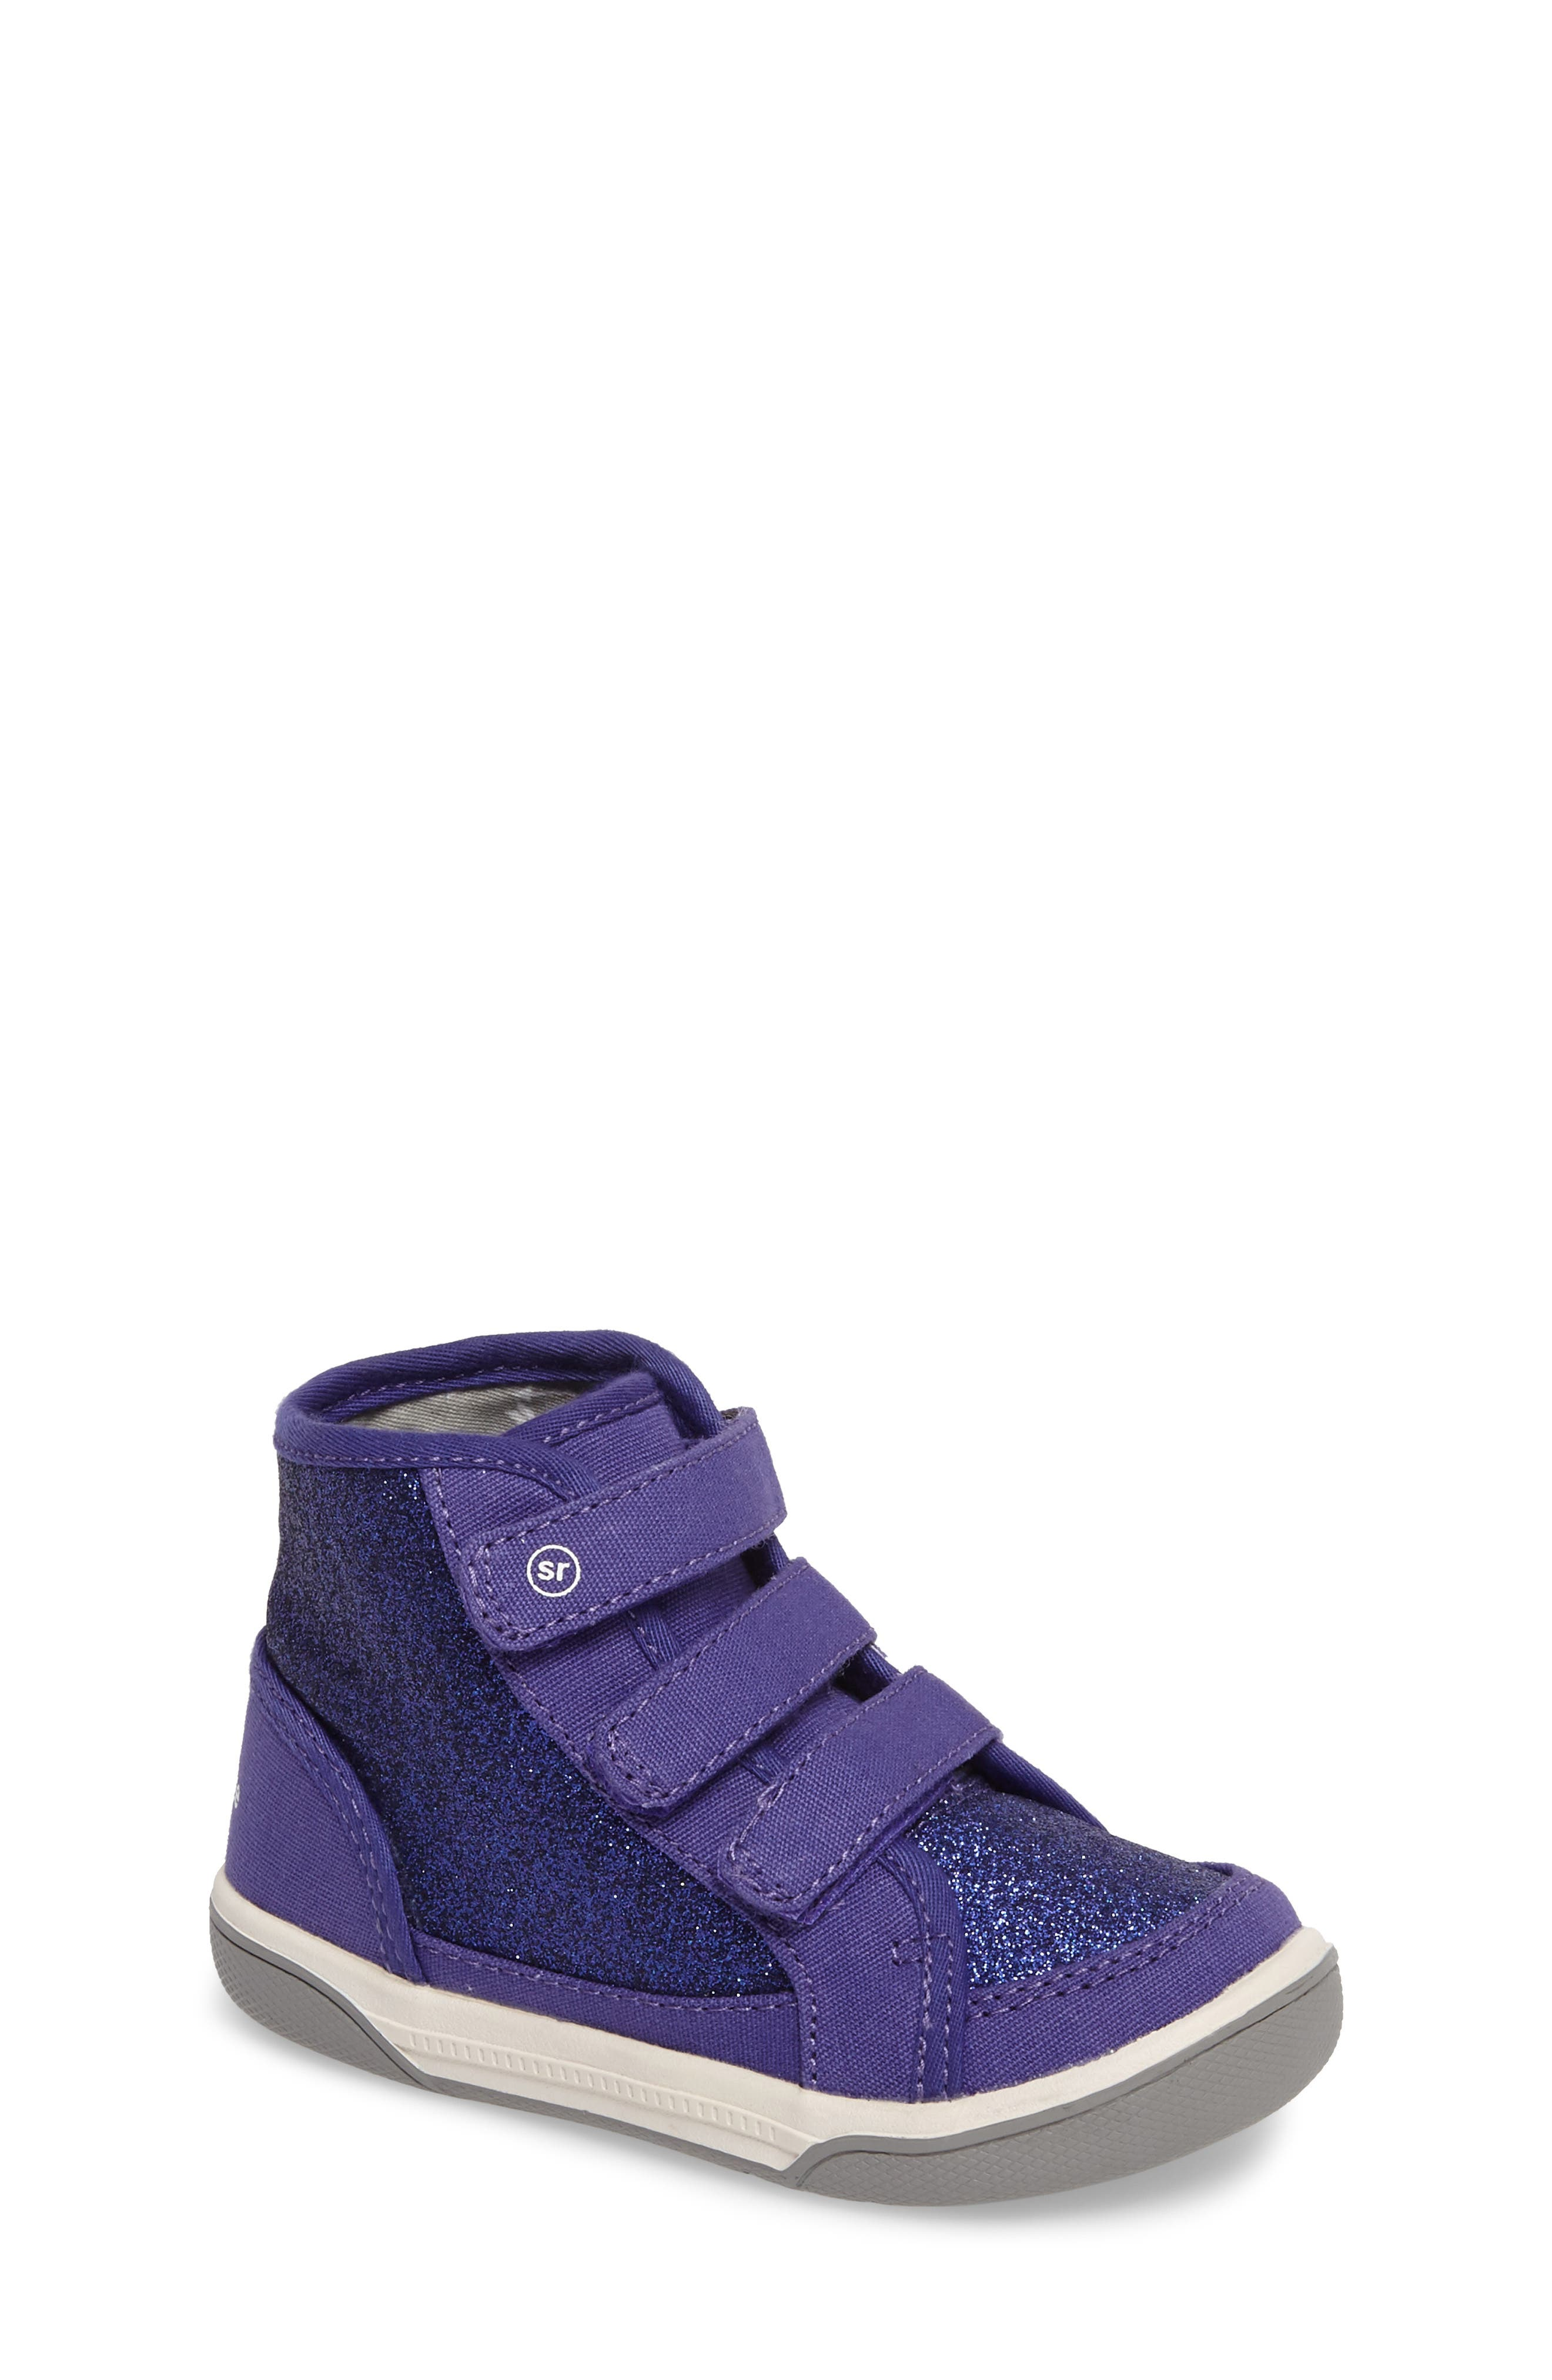 Ellis Glitter High Top Sneaker,                         Main,                         color, Purple